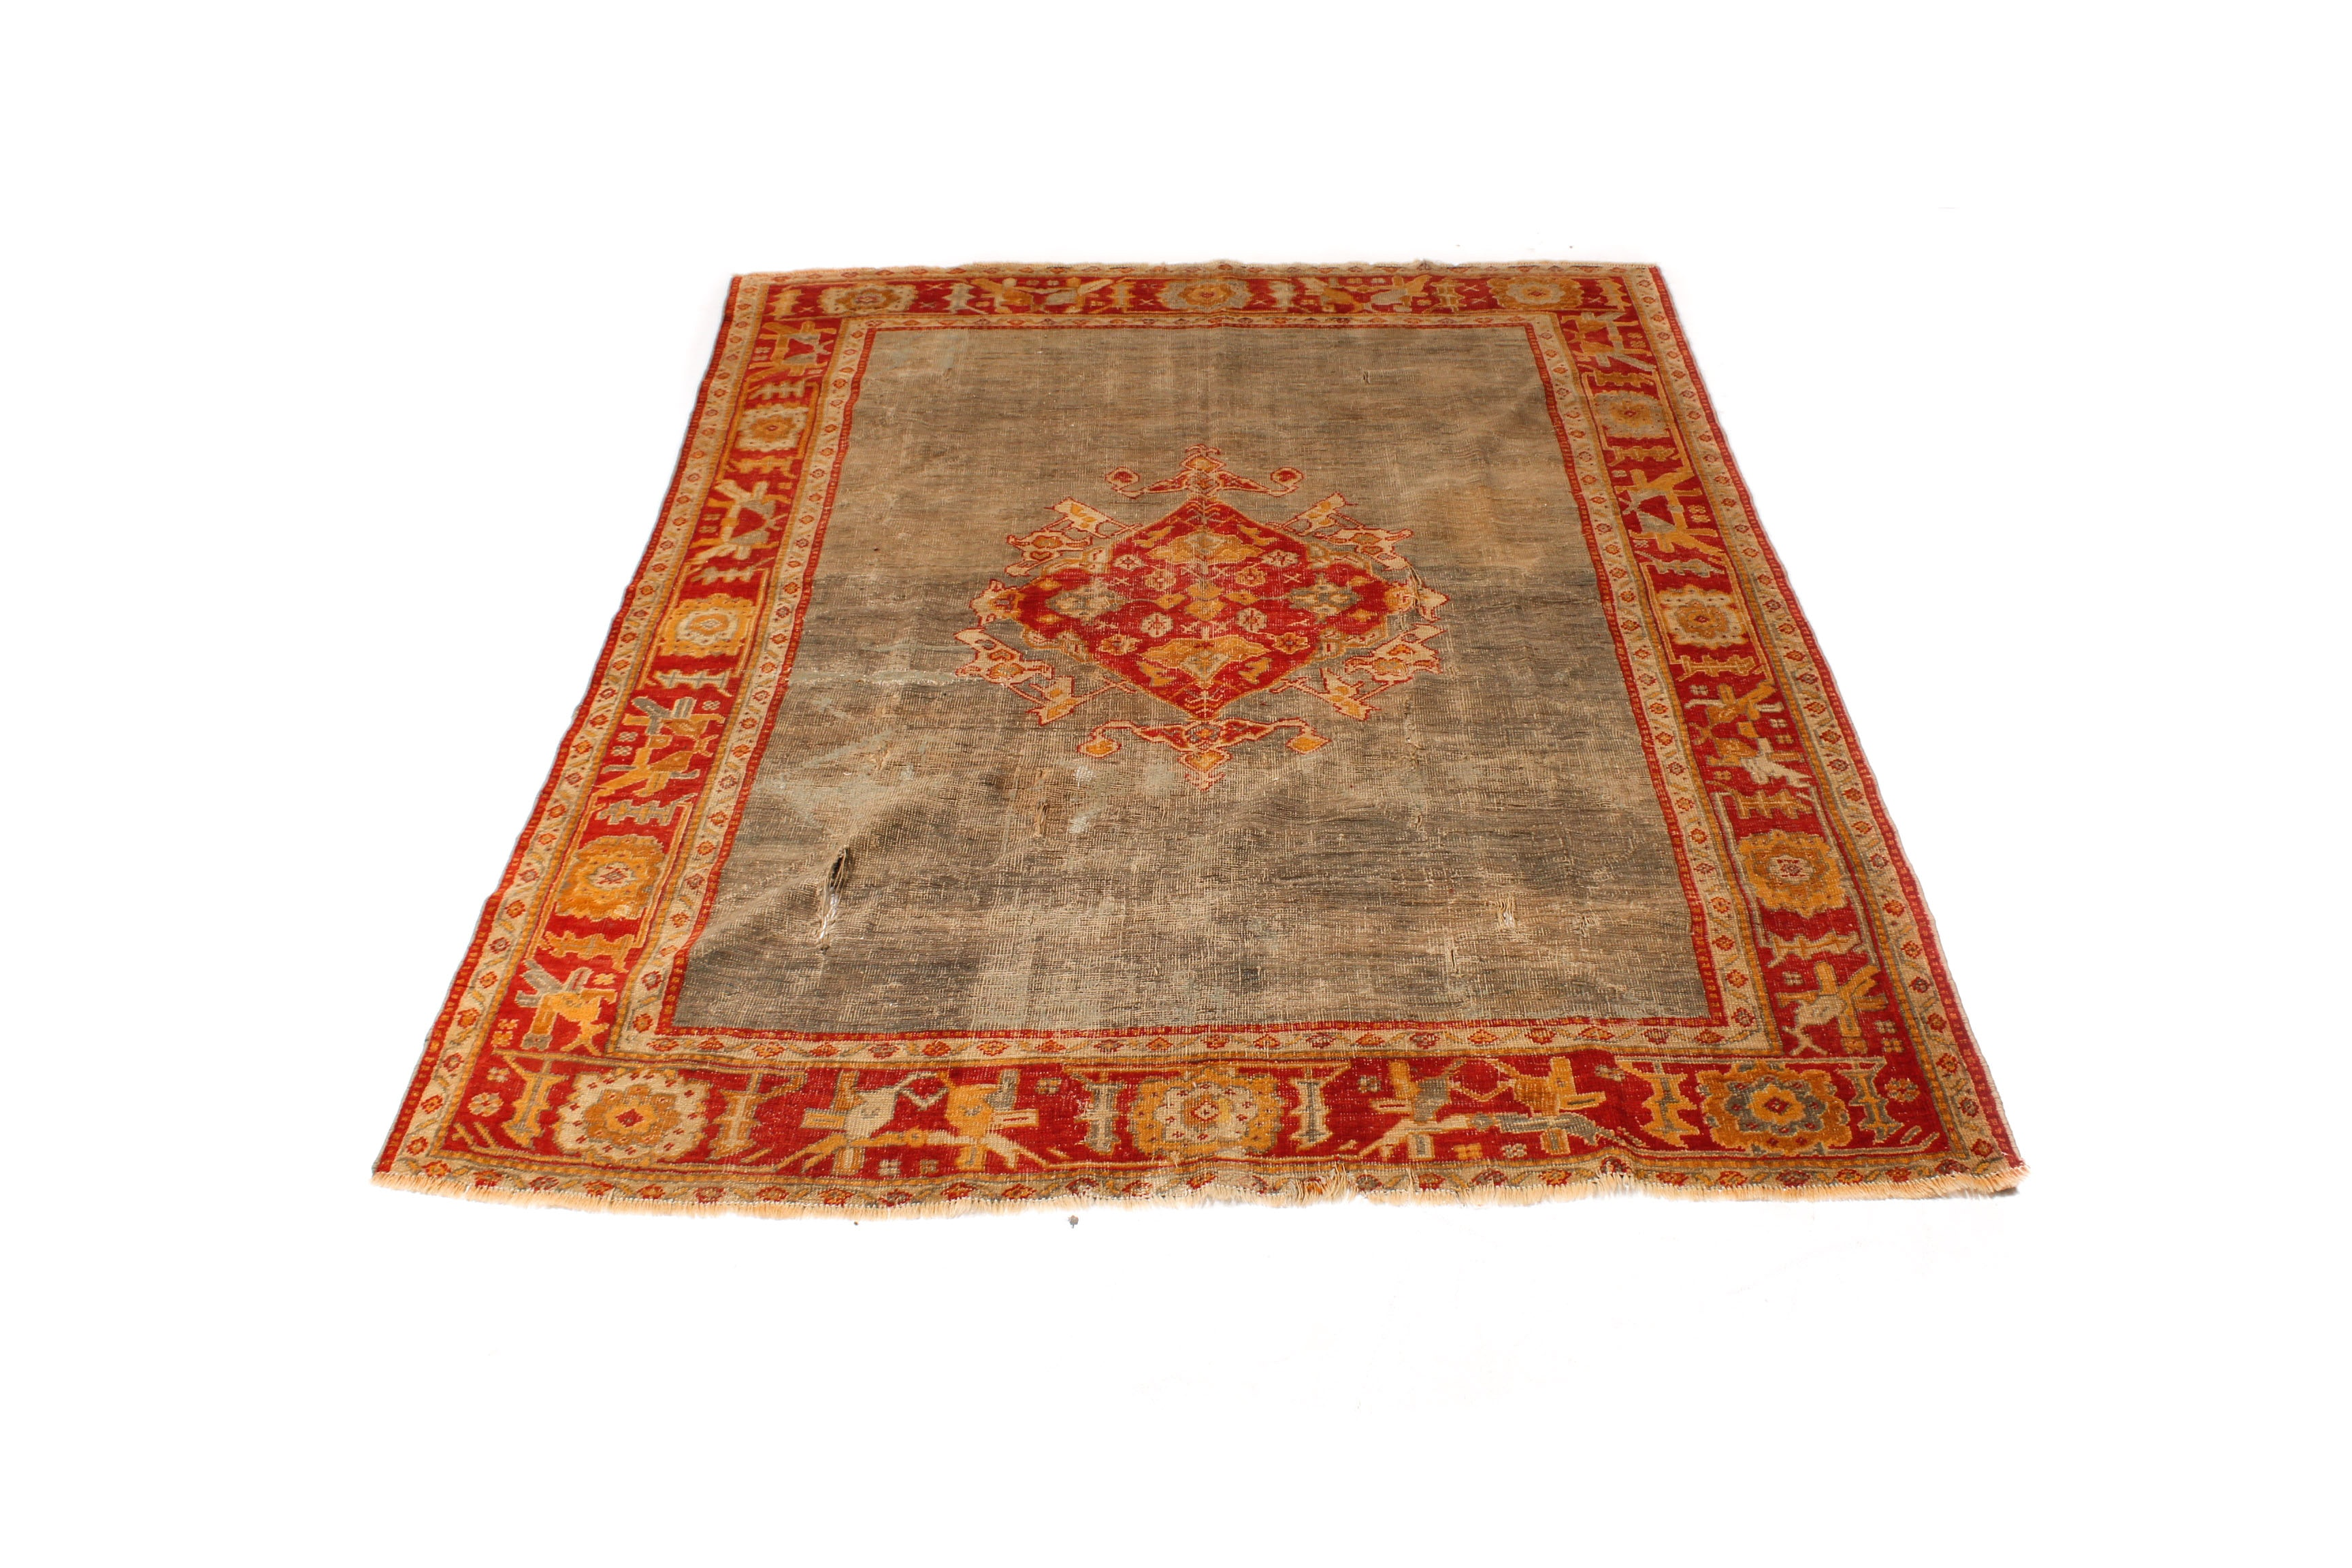 Antique Turkish Oushak Wool Rug, circa 1890